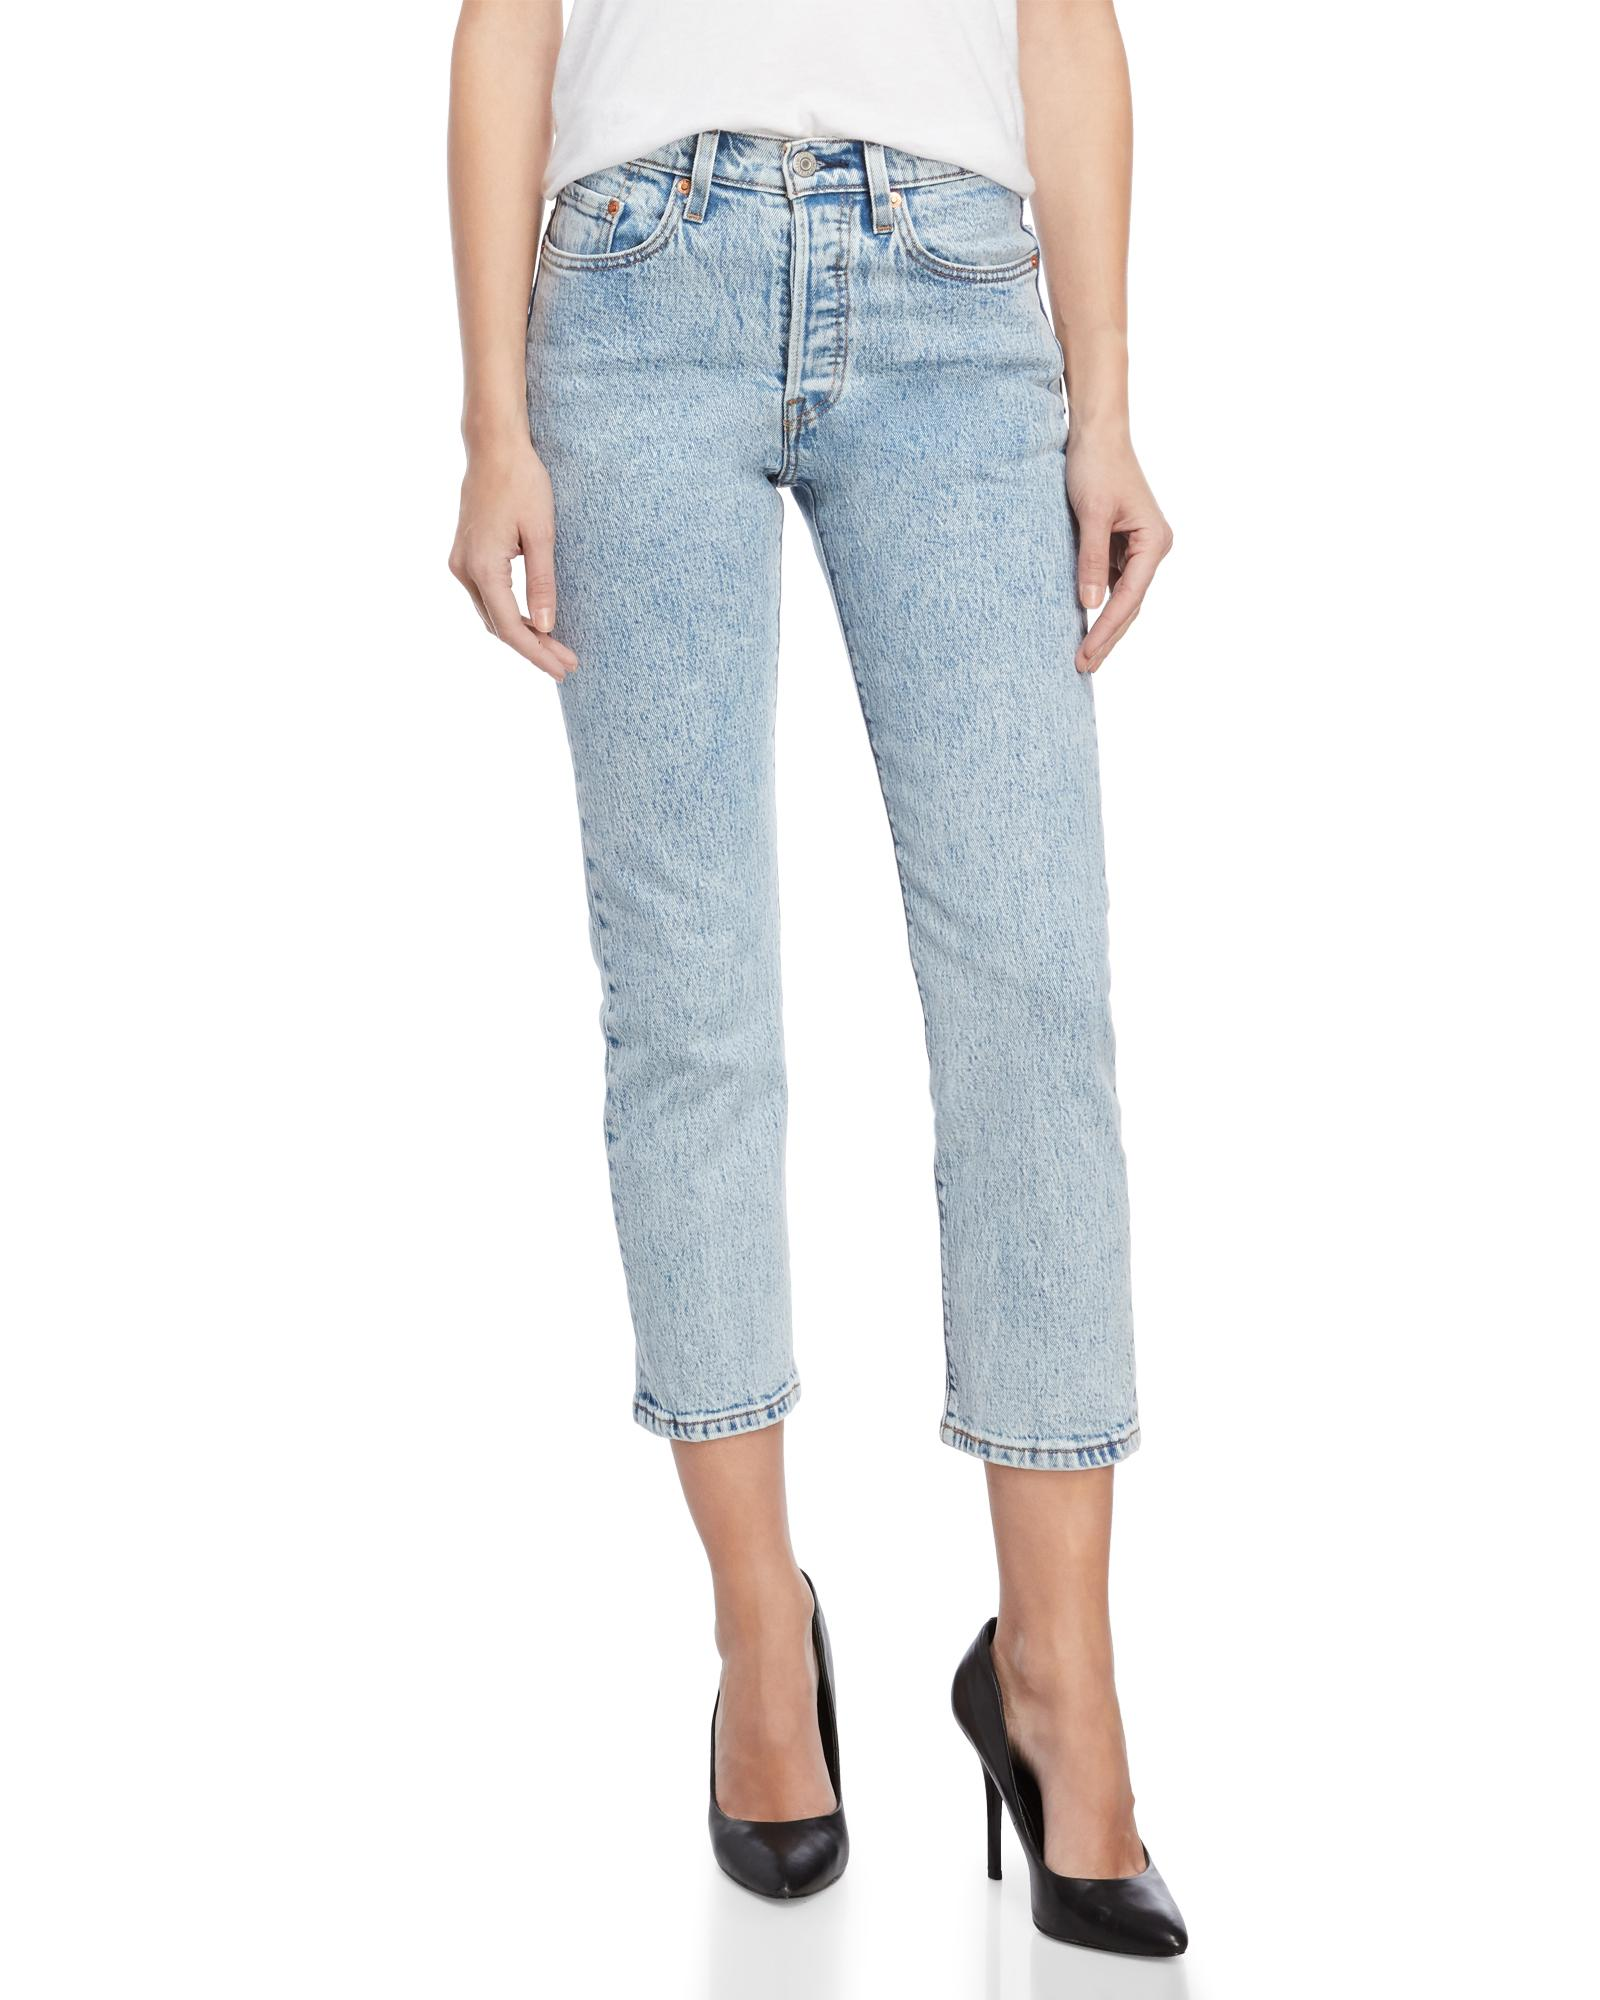 19000a80b53 Lyst - Levi's Stone Throw 501 Original Cropped Jeans in Blue